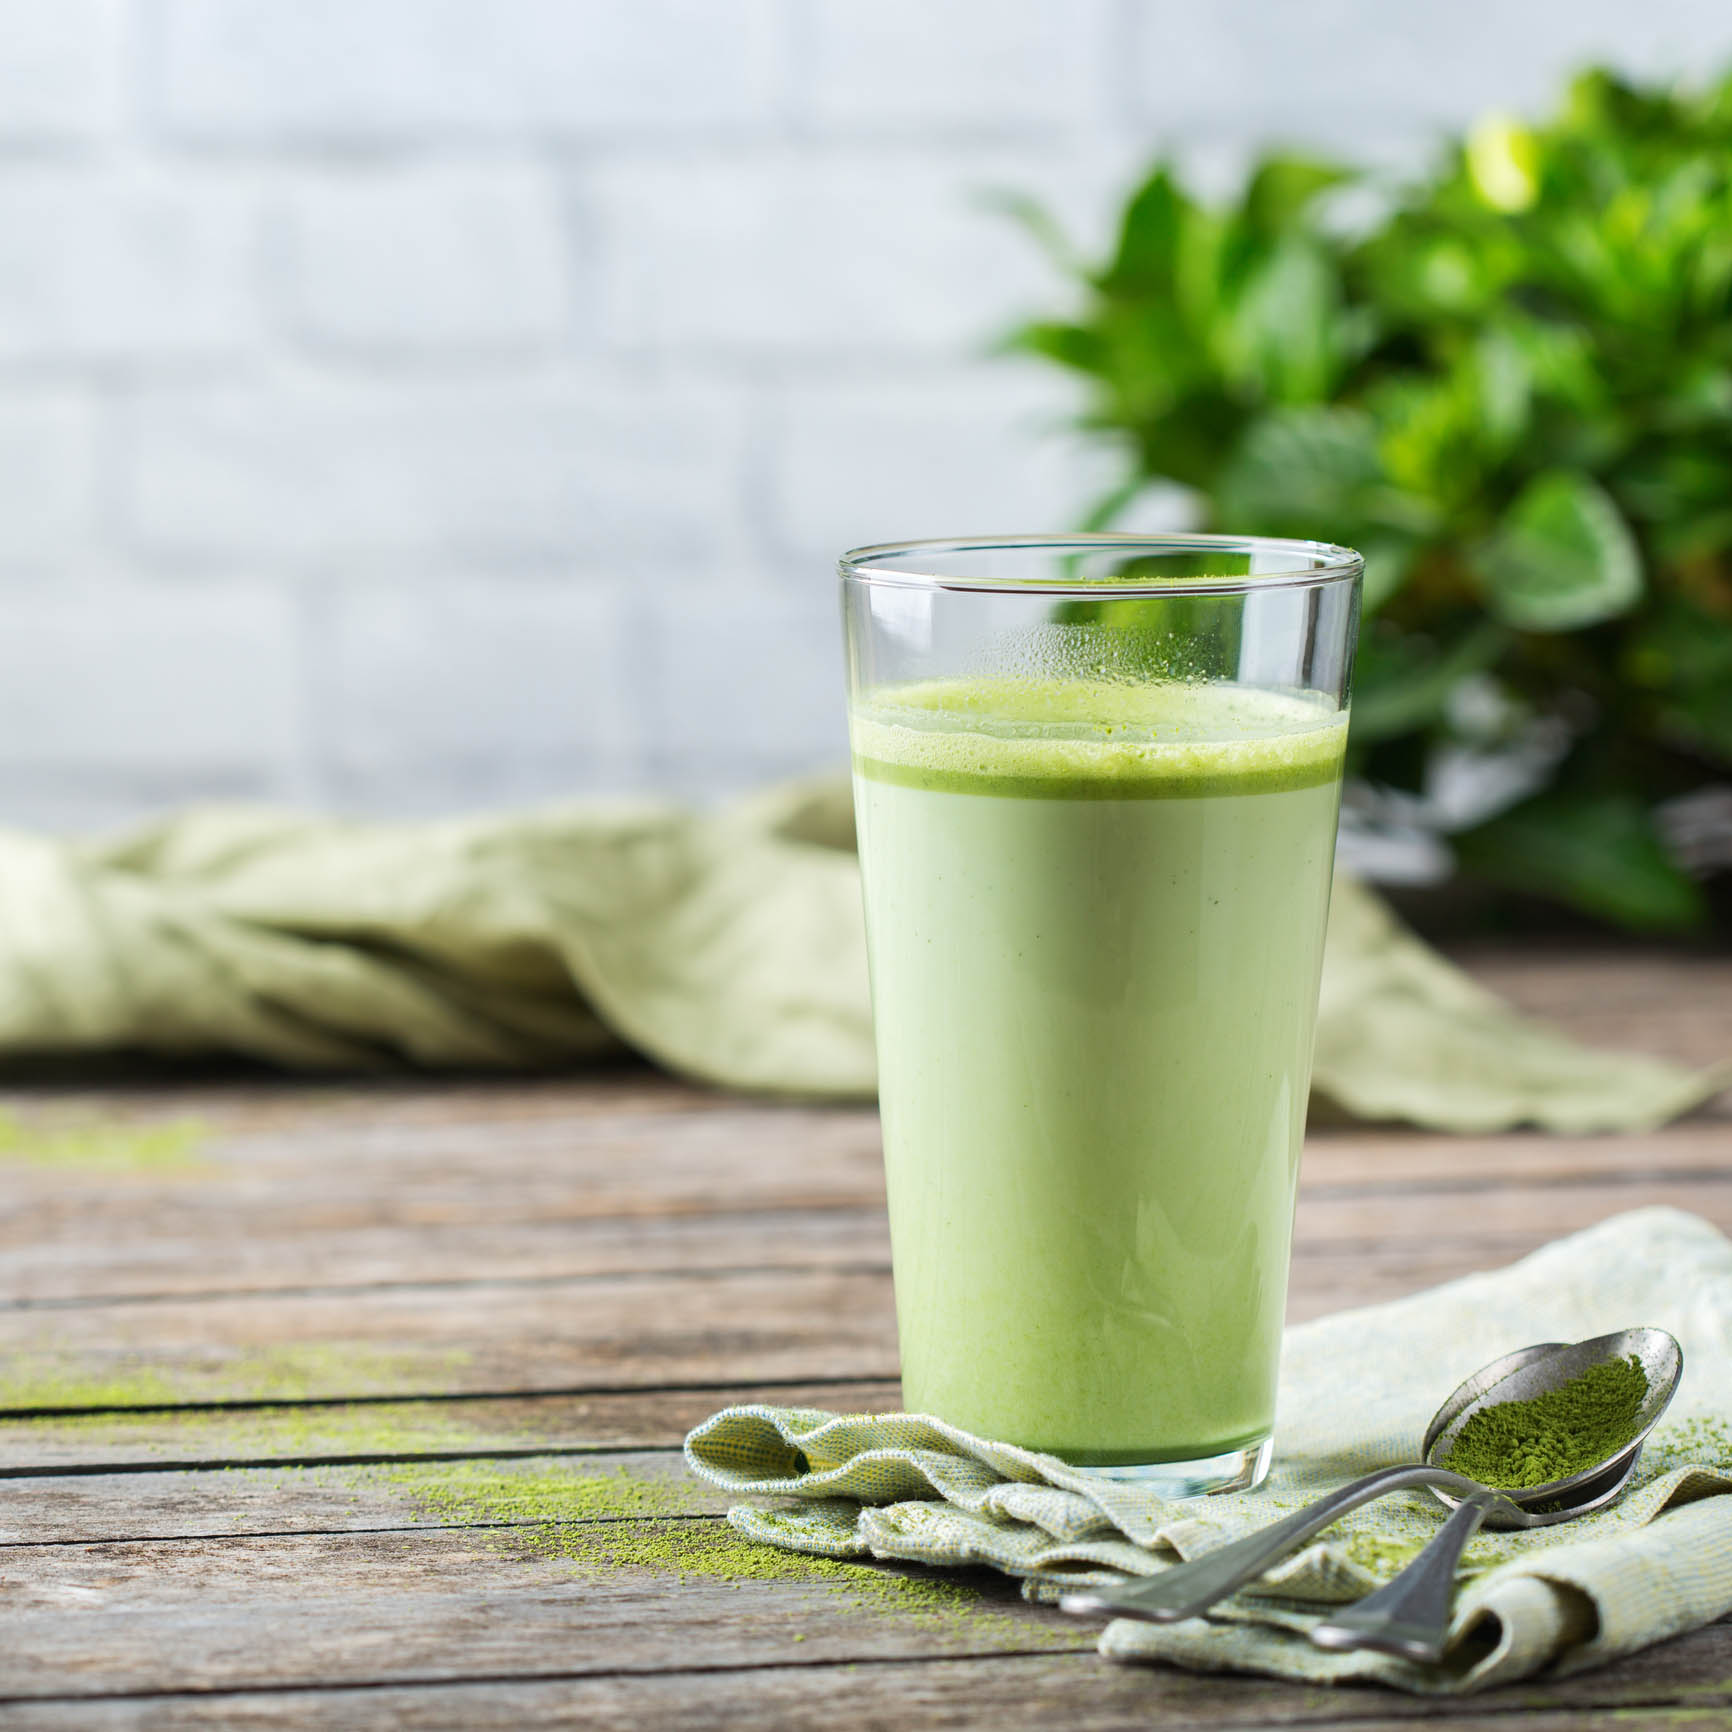 Matcha Green Tea: Health Benefits and Uses for online nutrition coaching and flexible diets